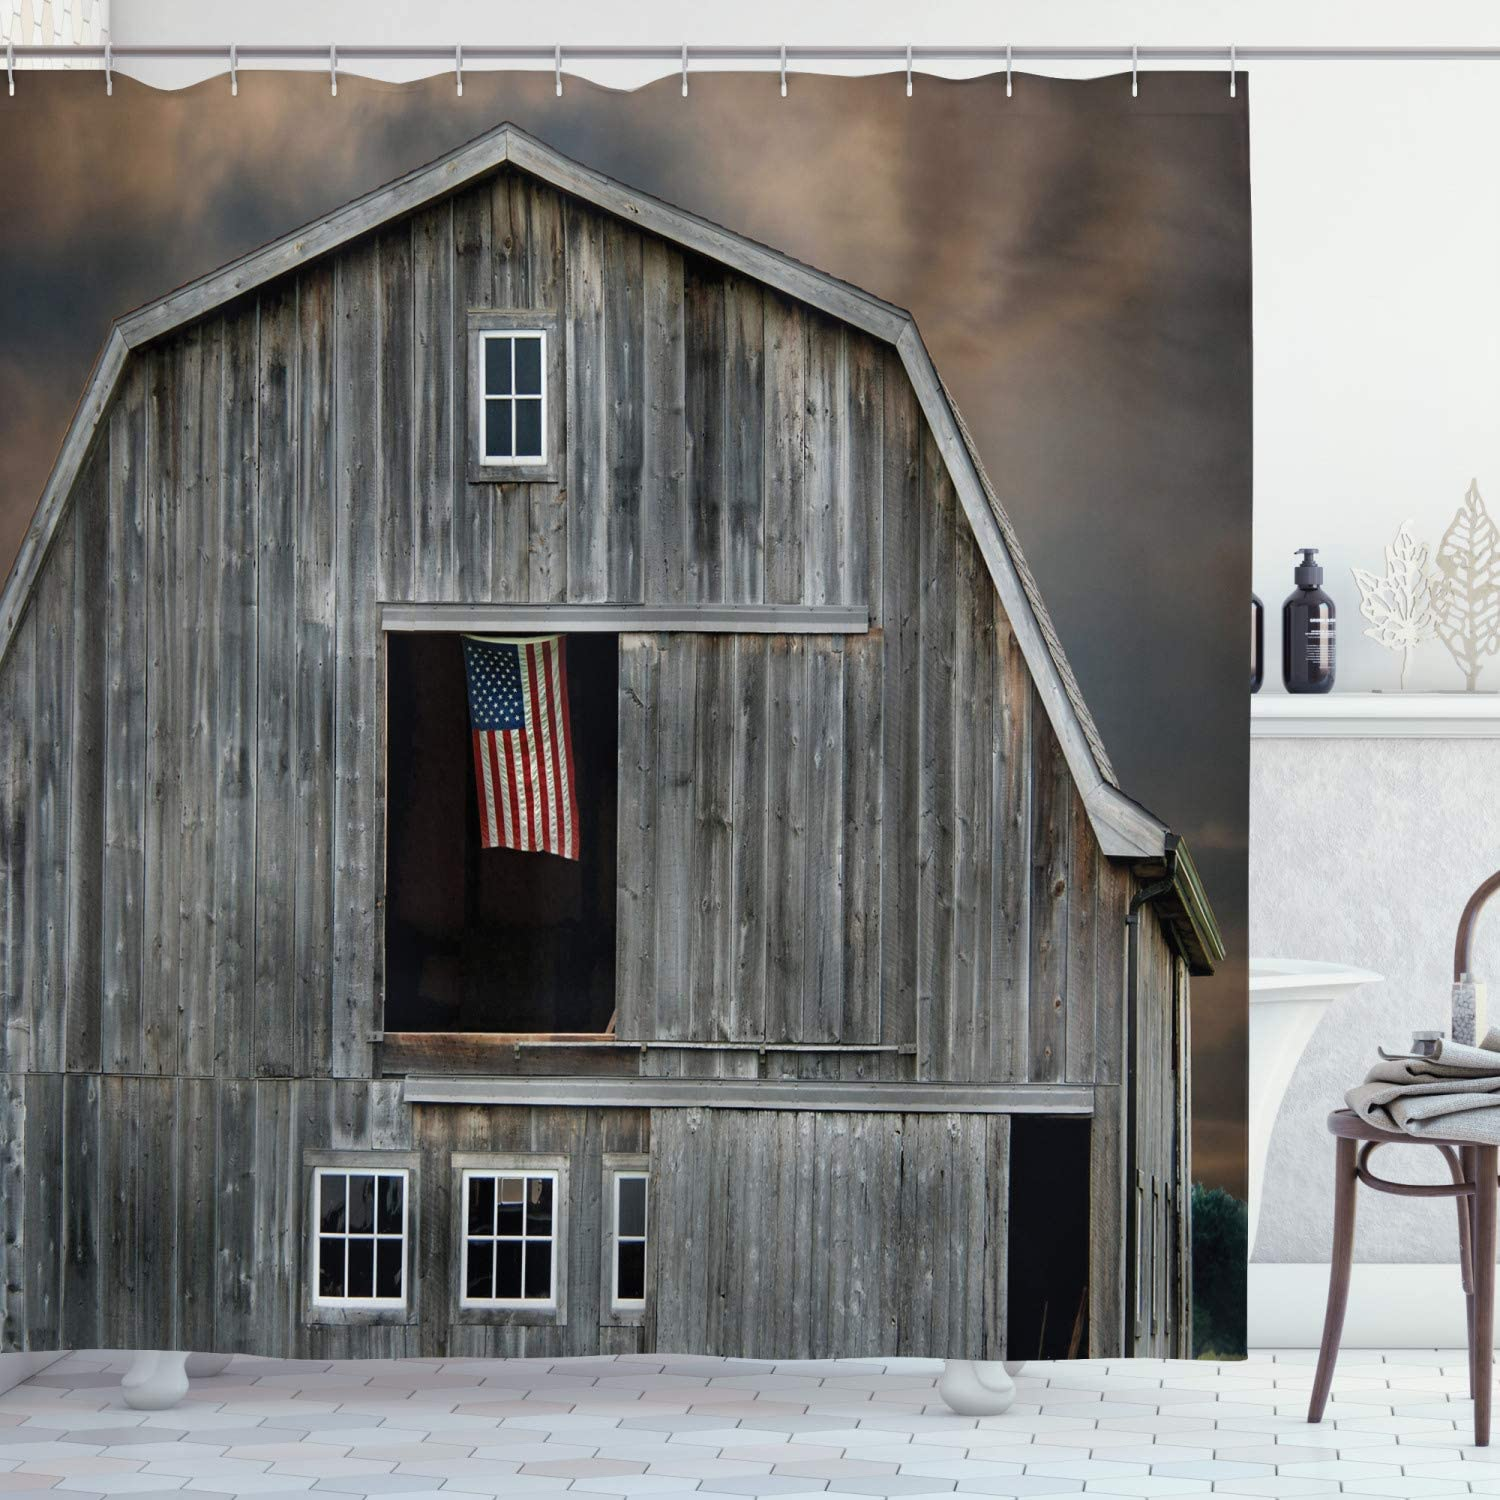 Ambesonne American Flag Shower Curtain, American Flag Flying in Hayloft Window Wooden Old House Dark Evening View, Cloth Fabric Bathroom Decor Set with.